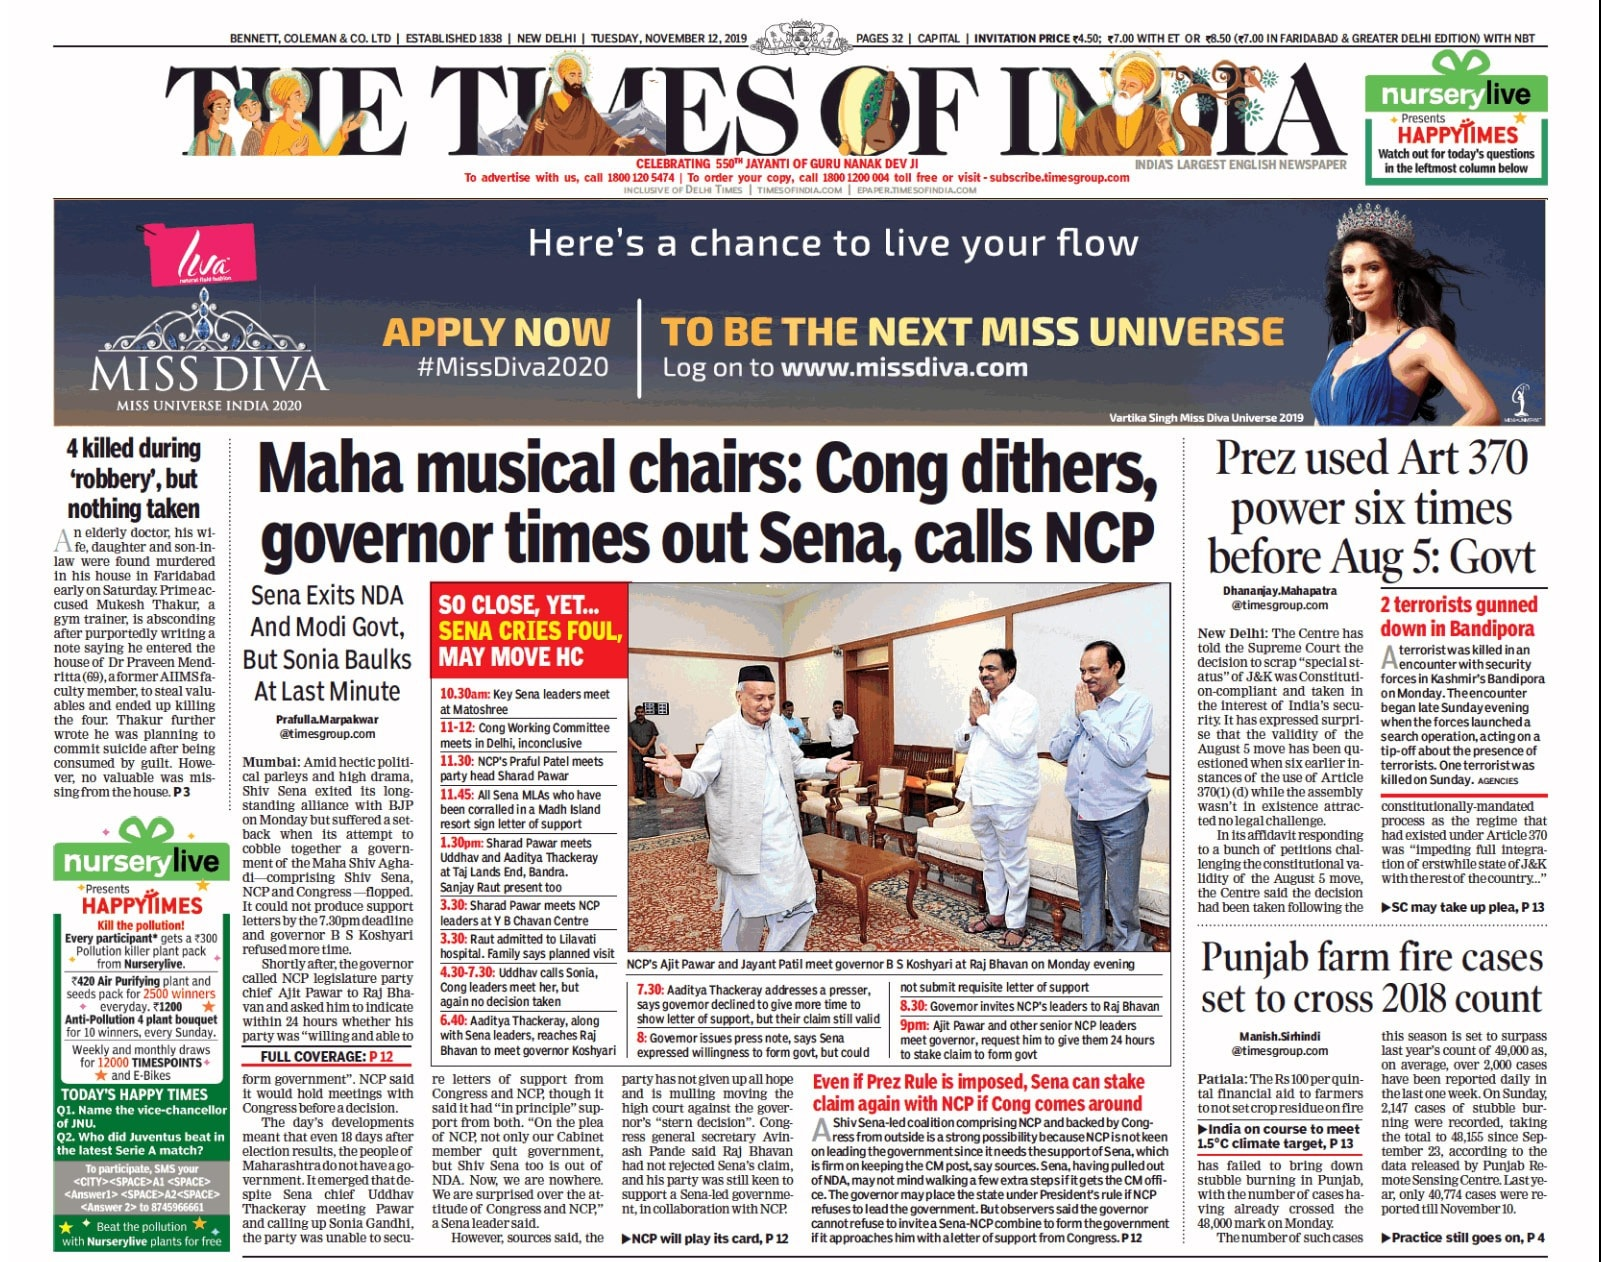 Newspaper Headlines: Maharashtra Governor Invites Ncp To Form Government, Other Big Stories